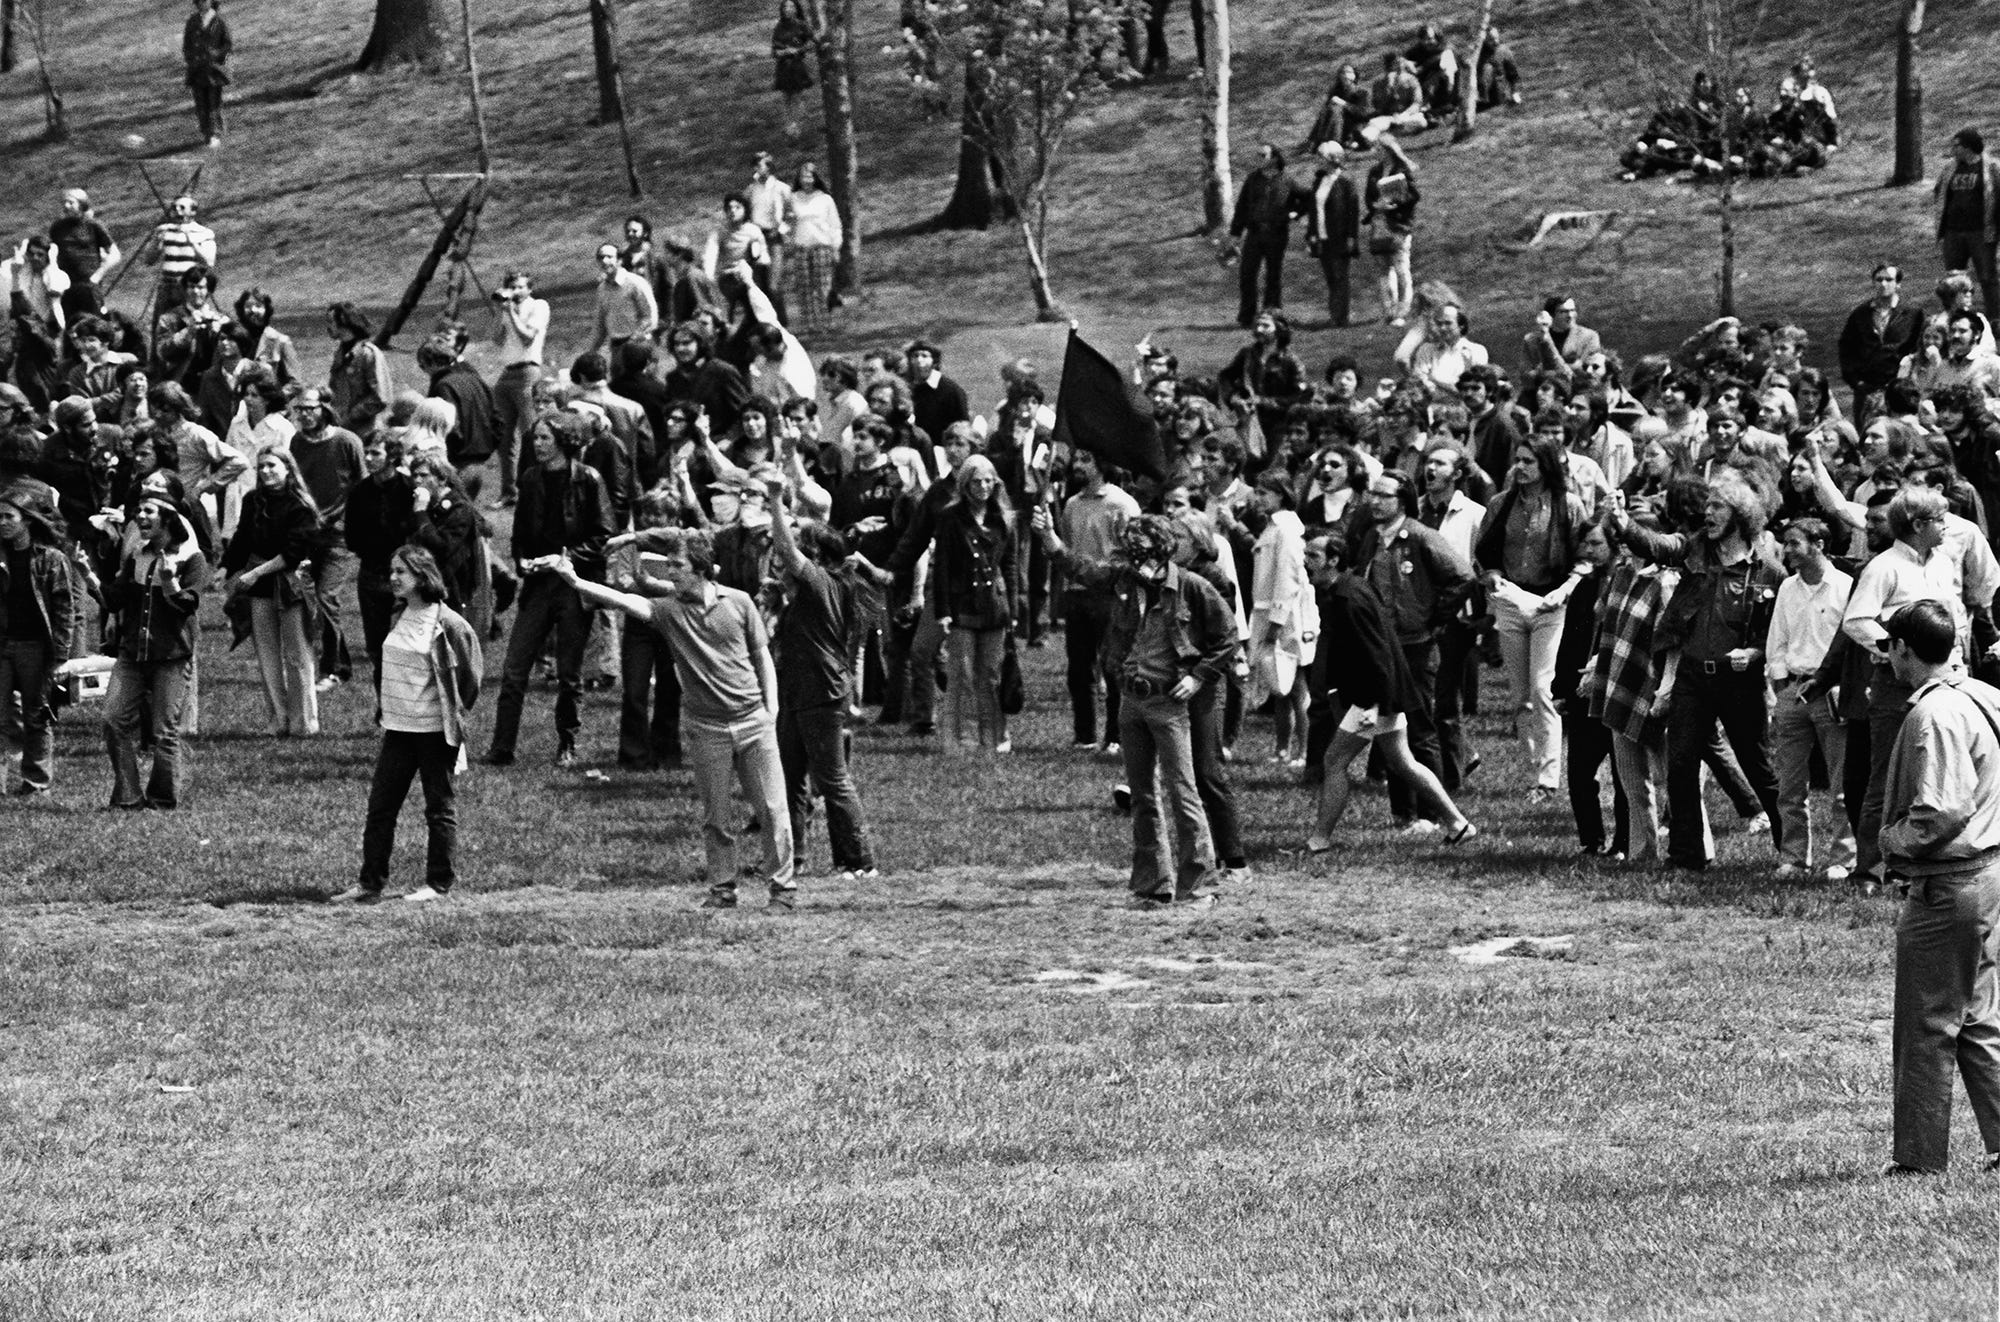 Protesters and bystanders at the edge of the Commons below Taylor Hall gesture and yell at the Ohio National Guardsmen across the field. At left, wearing a headband, is Jeffrey Miller; Mary Ann Vecchio is looking to the left wearing a black t-shirt and dark pants, partially behind the young man flipping the bird.